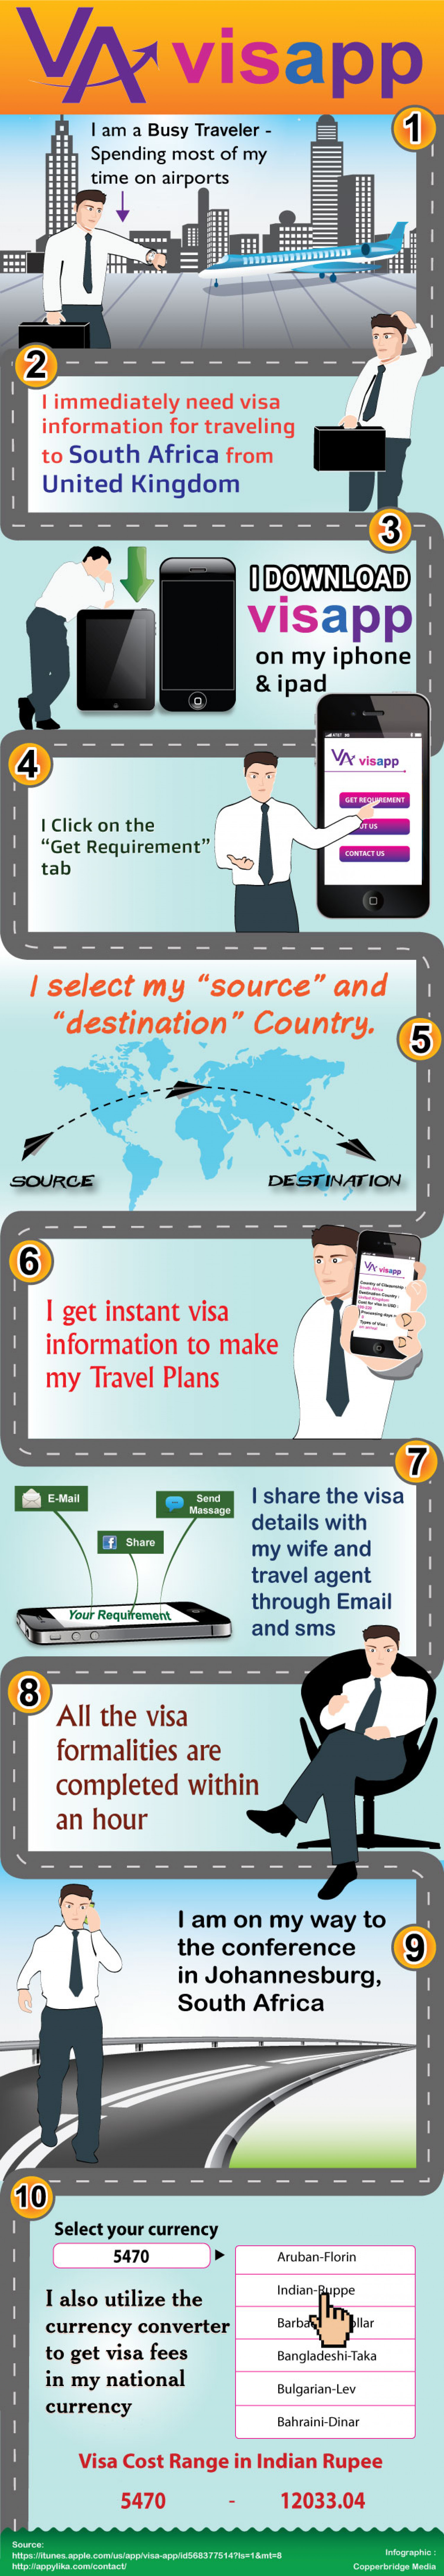 Visa mobile Application Infographic